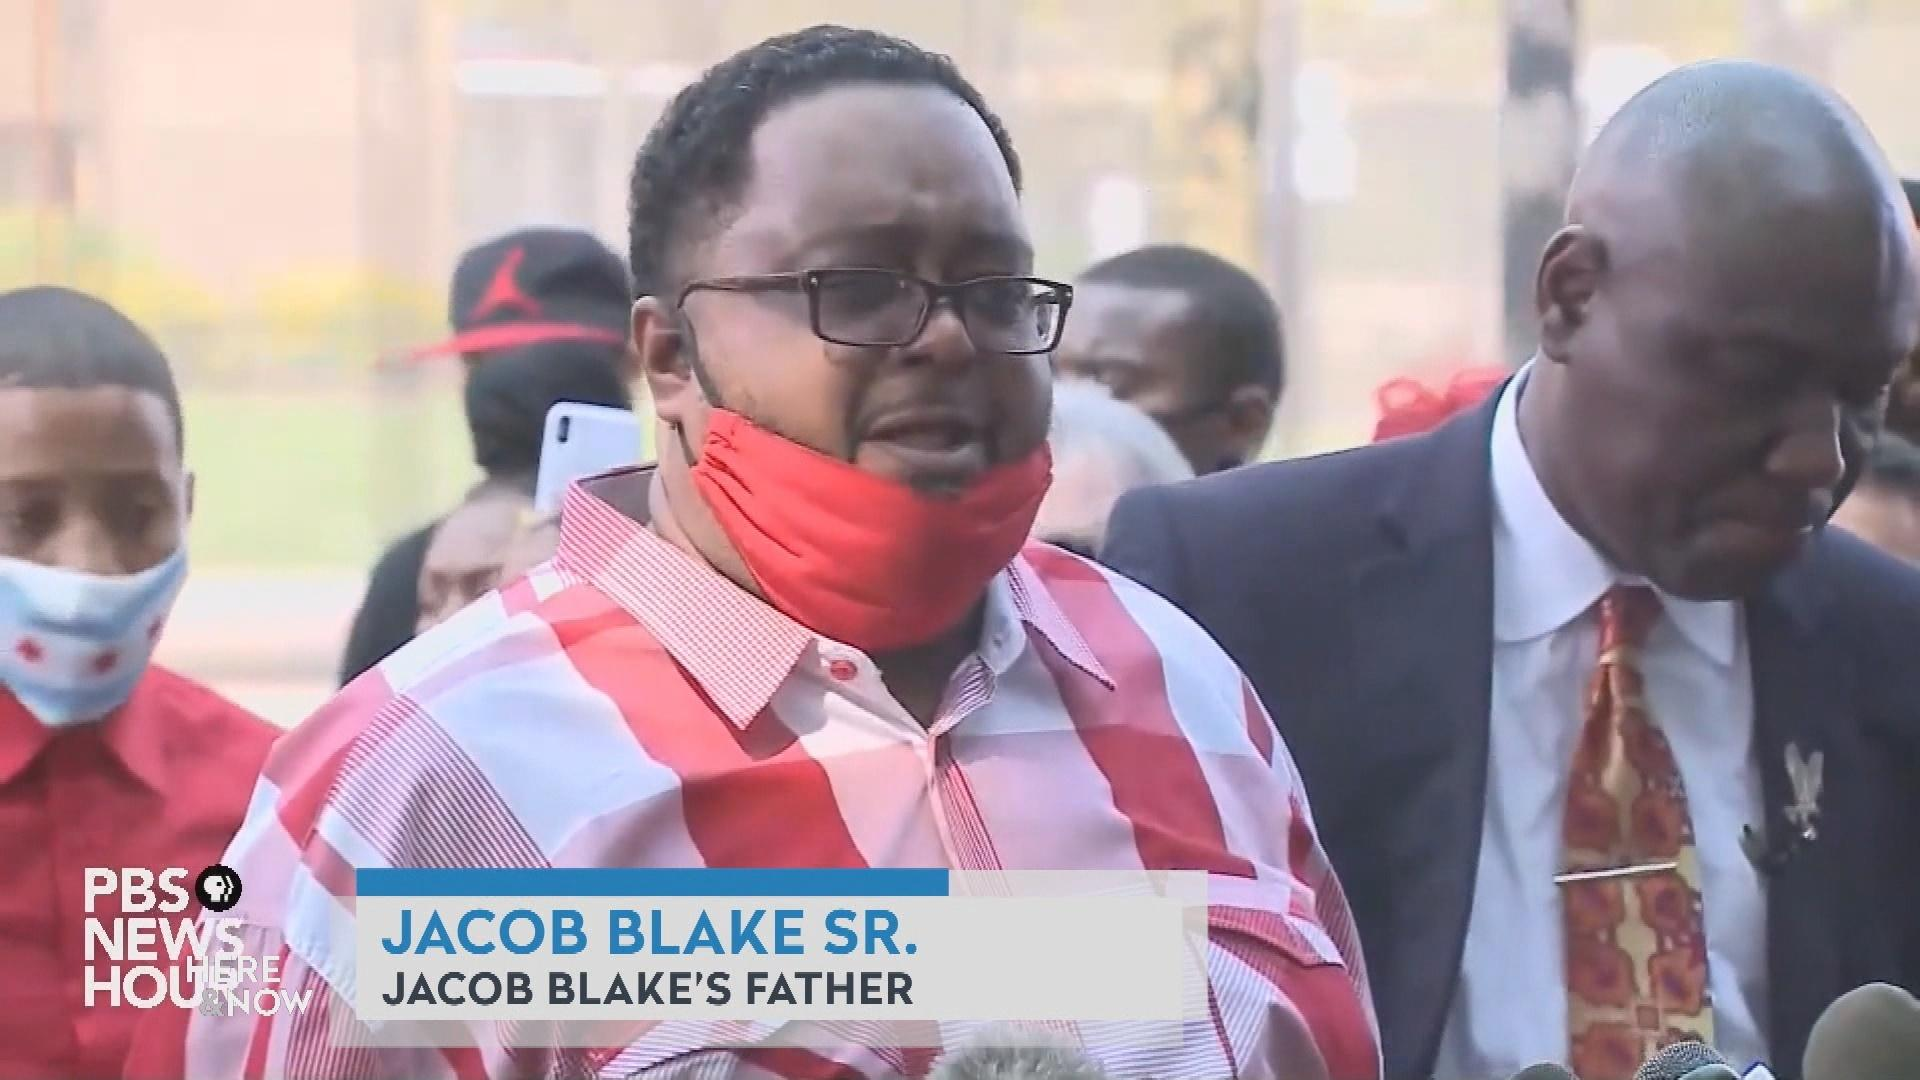 Kenosha Residents Protest for Jacob Blake